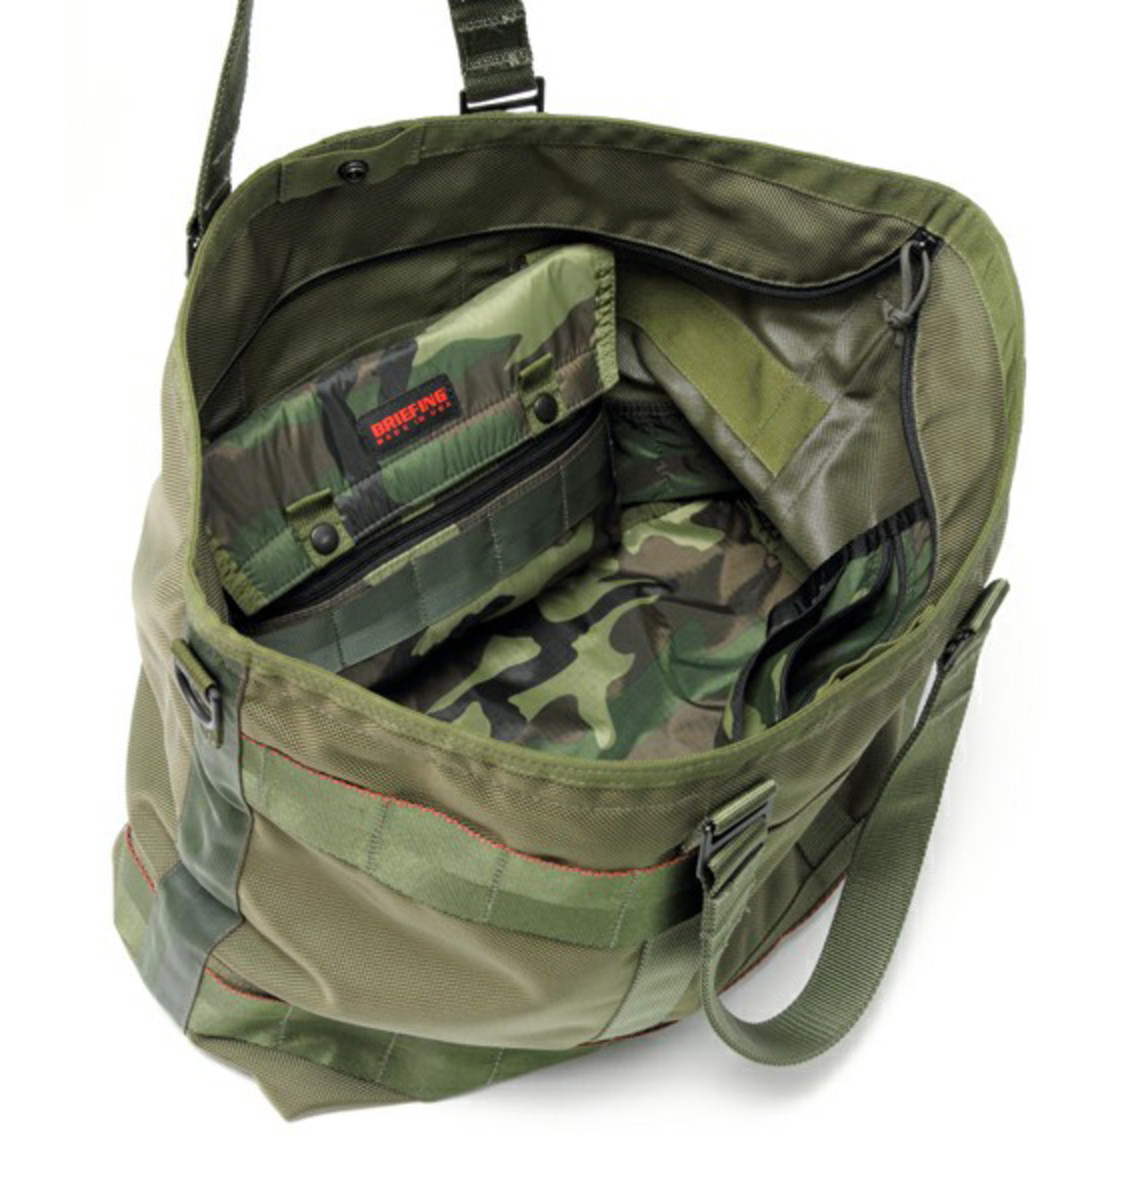 beams-plus-briefing-mil-training-tote-bag-06